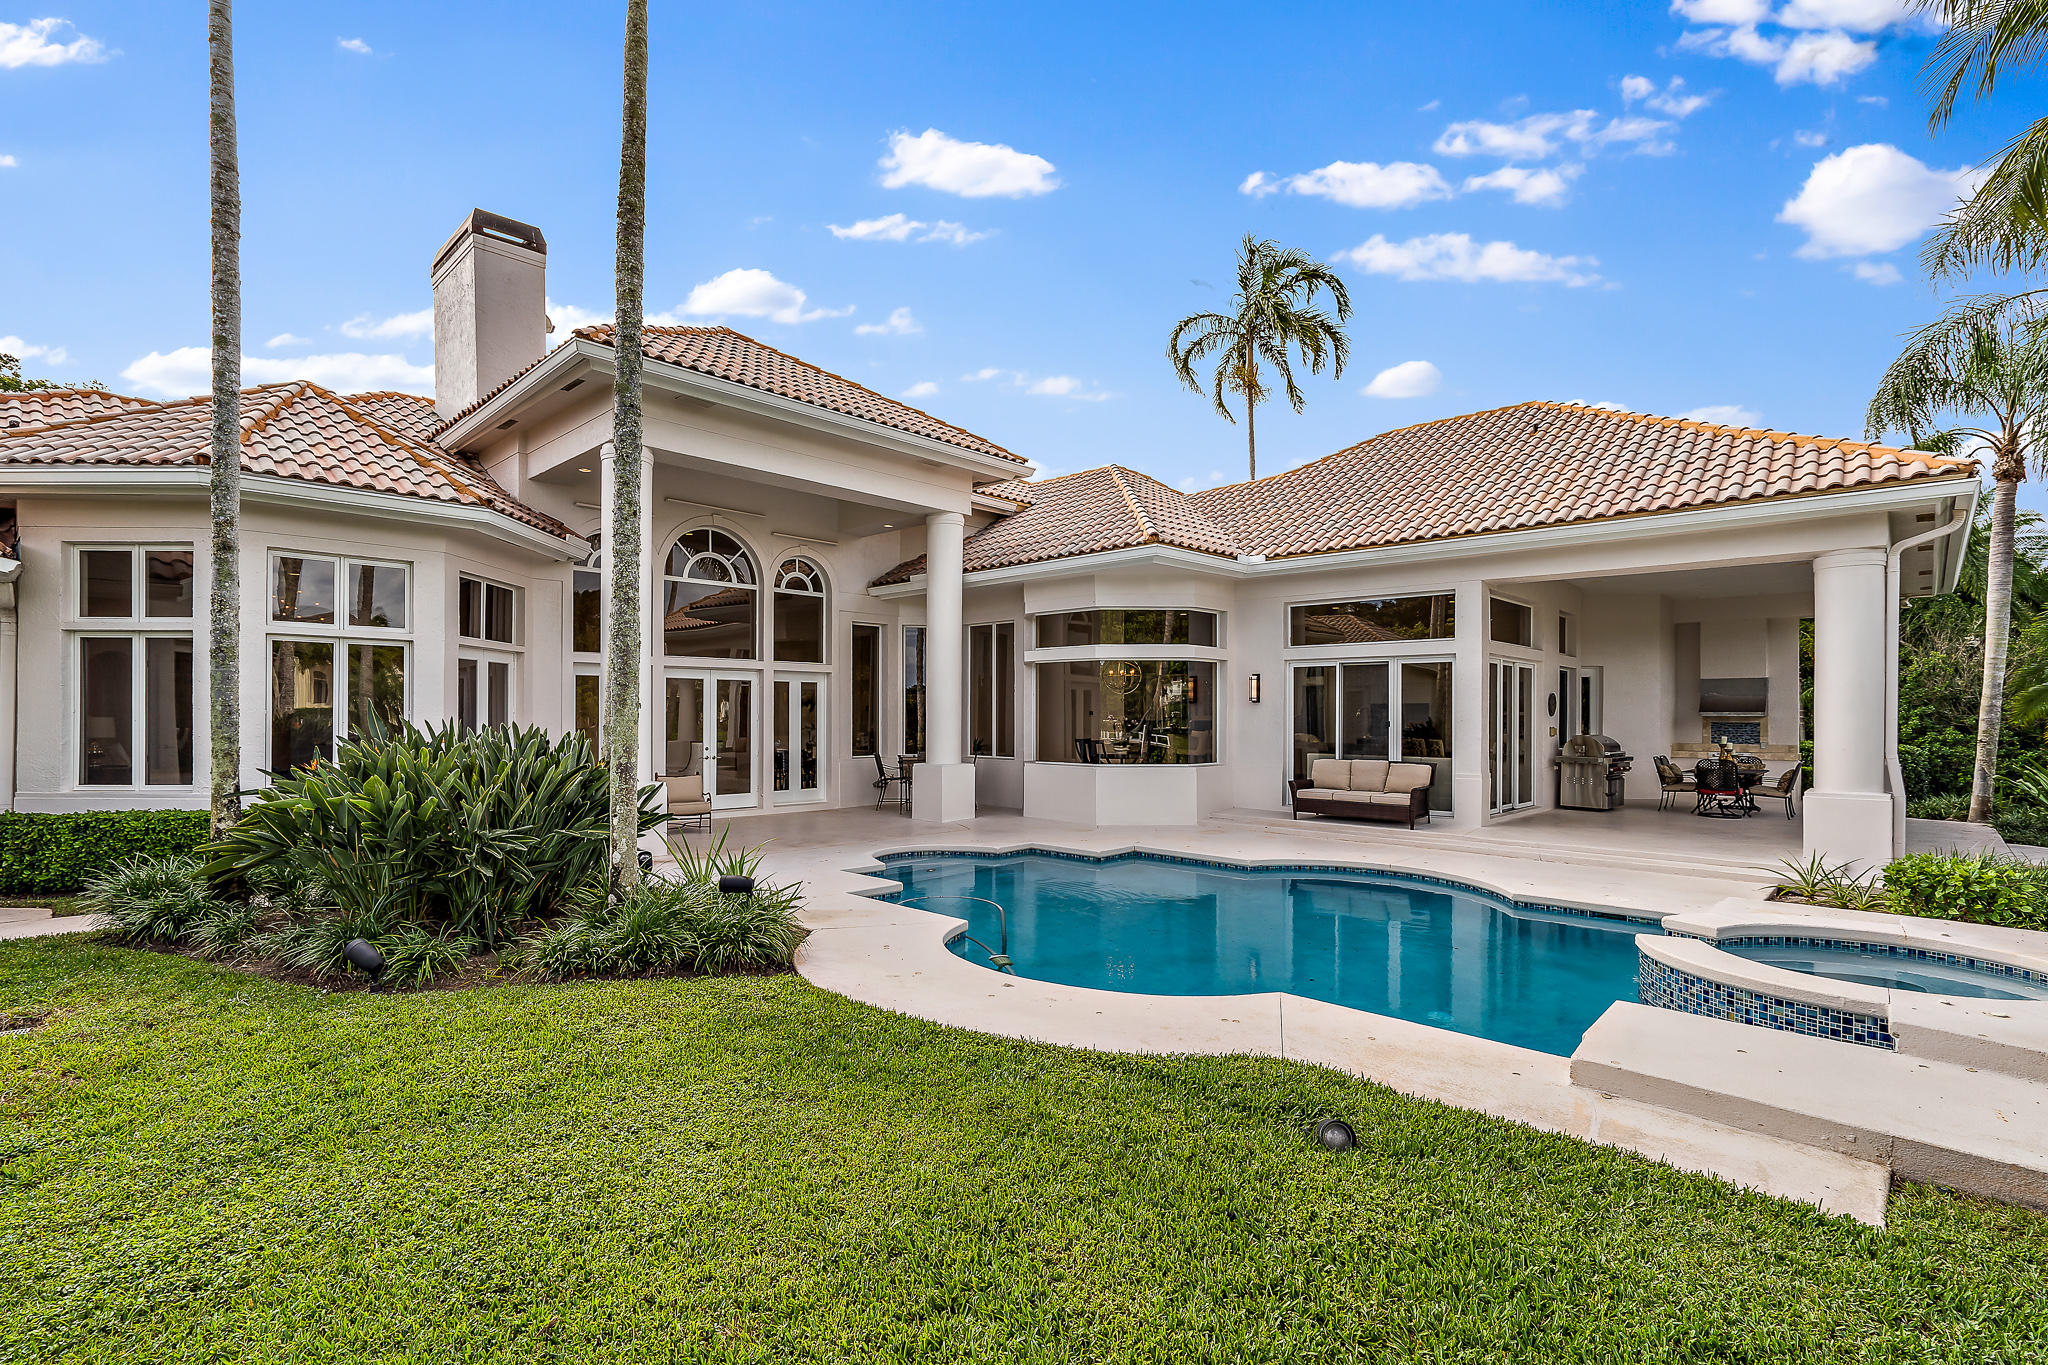 2763 Calais Drive, Palm Beach Gardens, Florida 33410, 6 Bedrooms Bedrooms, ,8.2 BathroomsBathrooms,A,Single family,Calais,RX-10482850